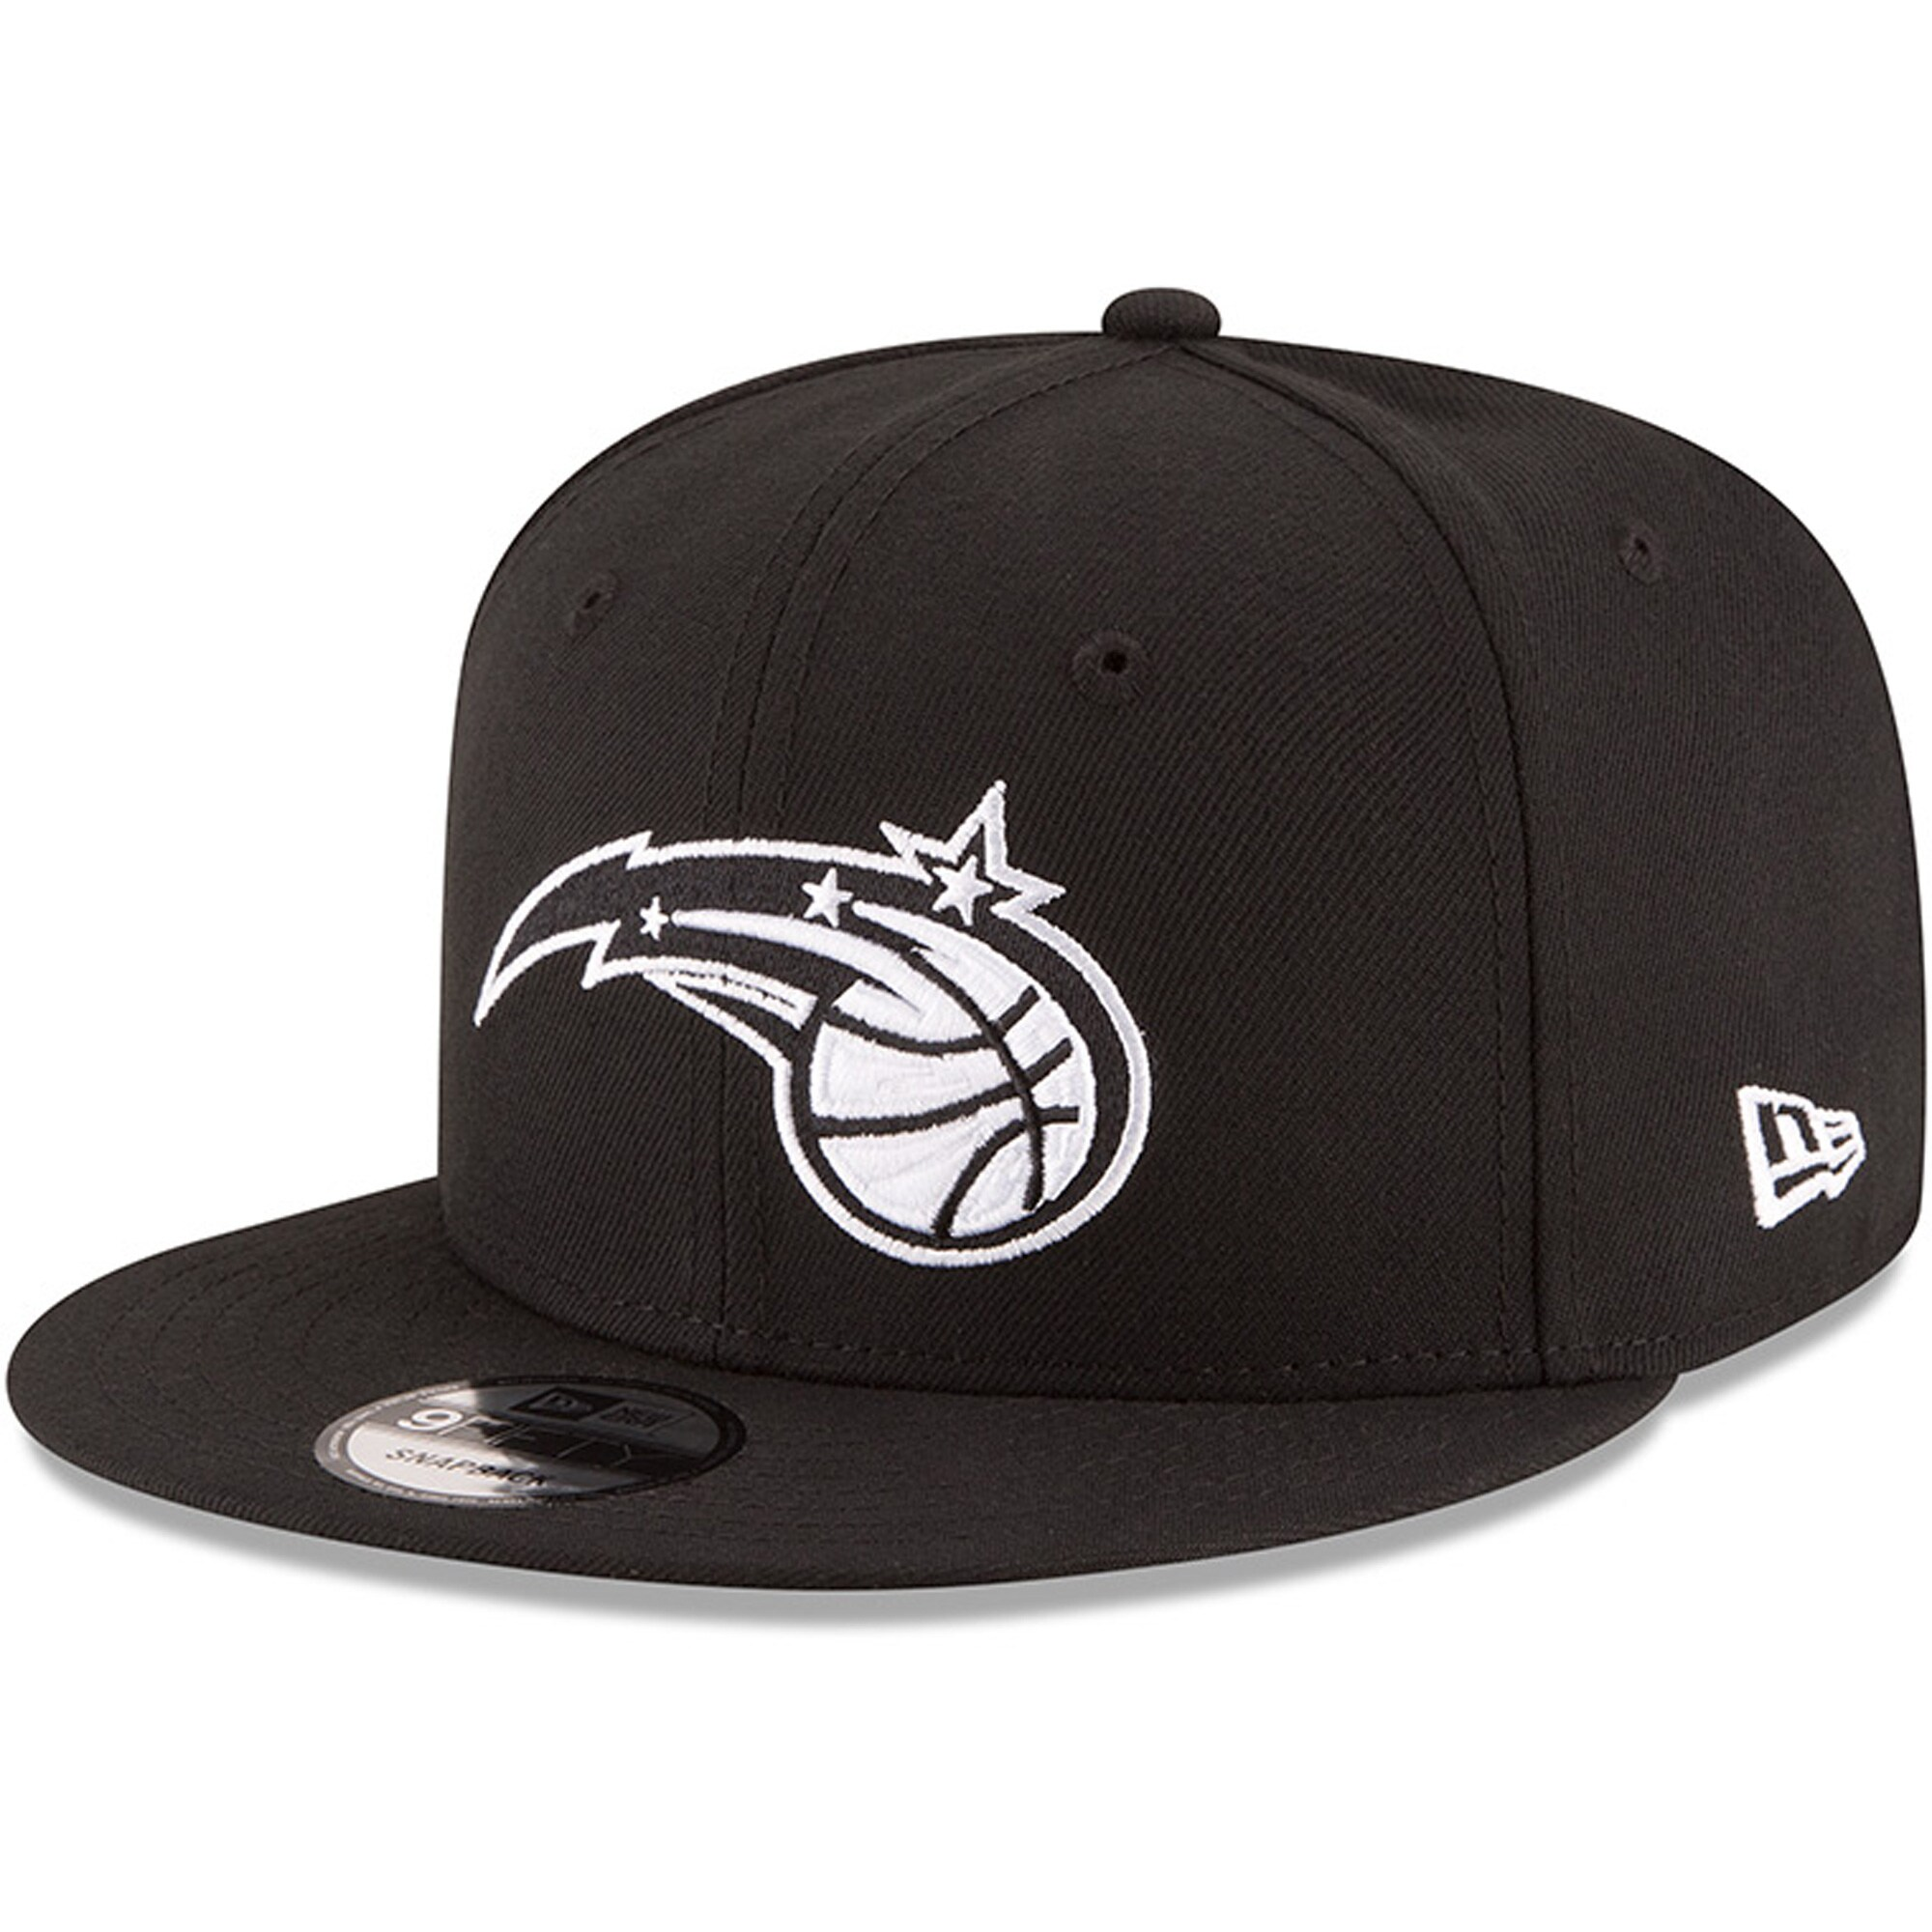 Orlando Magic New Era Black & White Logo 9FIFTY Adjustable Snapback Hat - Black